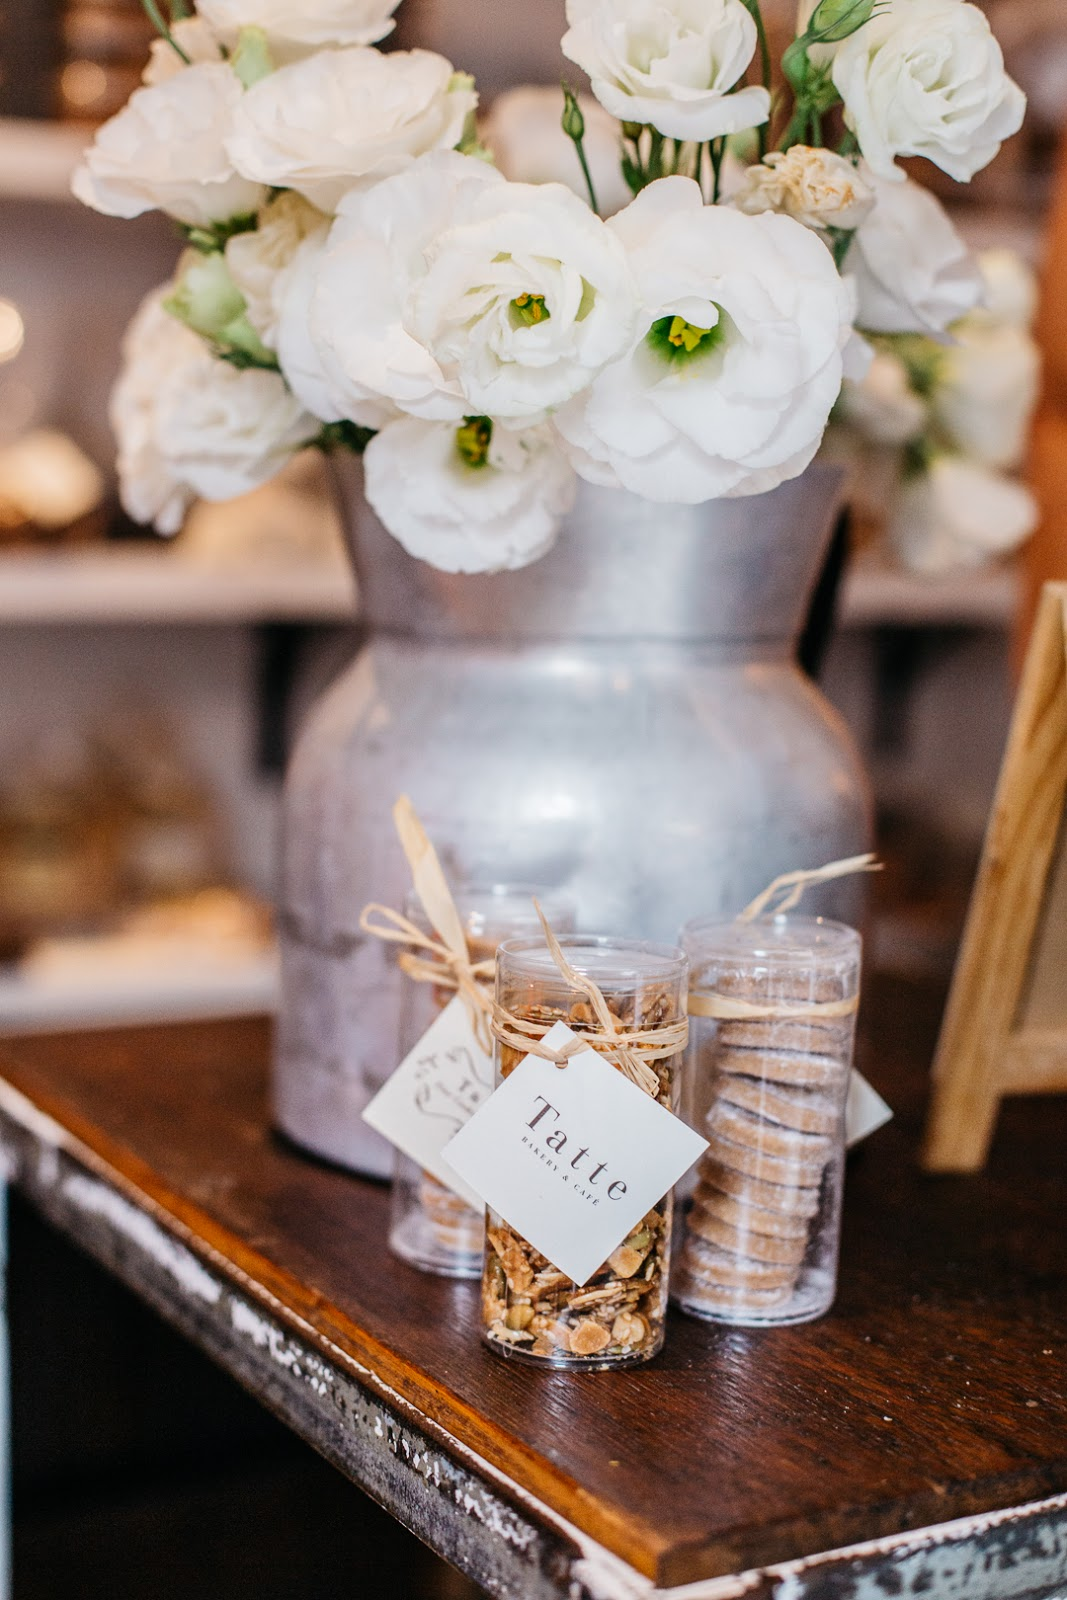 Fresh blooms and delicious cookies from Boston's Tatte Bakery PLUS lots of amazing links for your weekend ahead